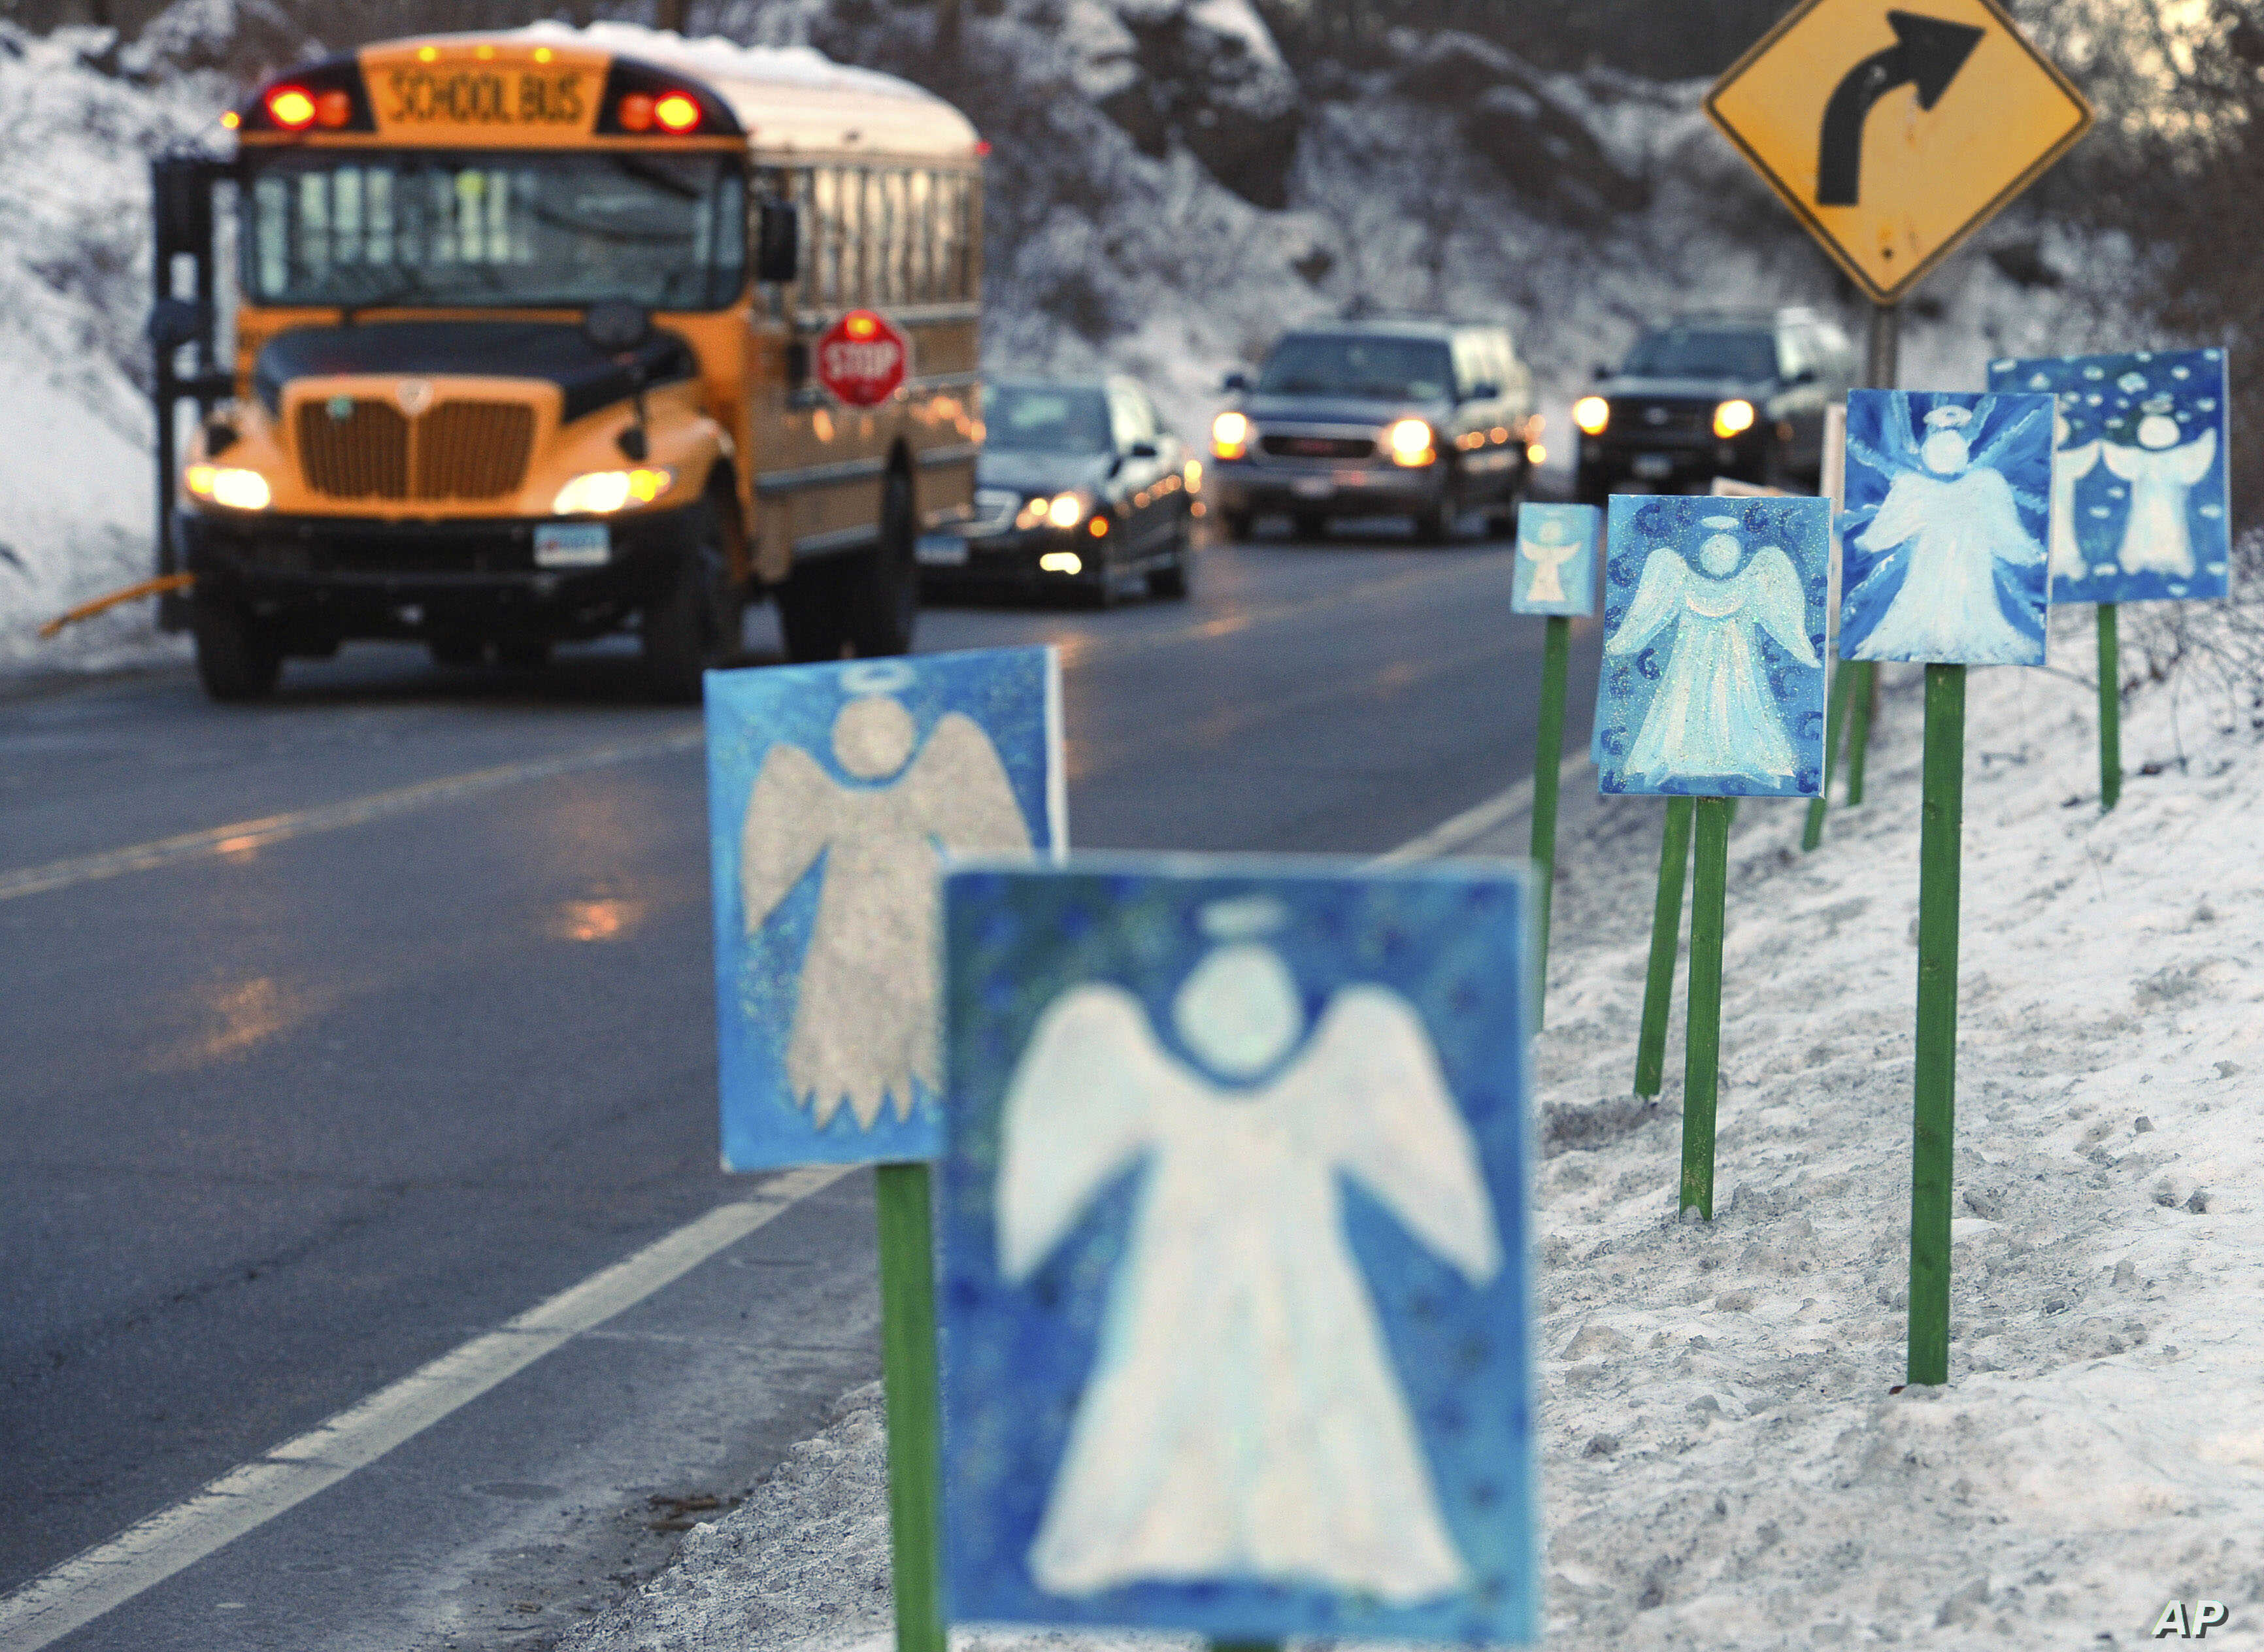 FILE - In this Jan. 3, 2013, file photo, a bus traveling from Newtown, Conn., to Monroe stops near 26 angel signs posted along the roadside in Monroe, Conn., on the first day of classes for Sandy Hook Elementary School students since the December 201...